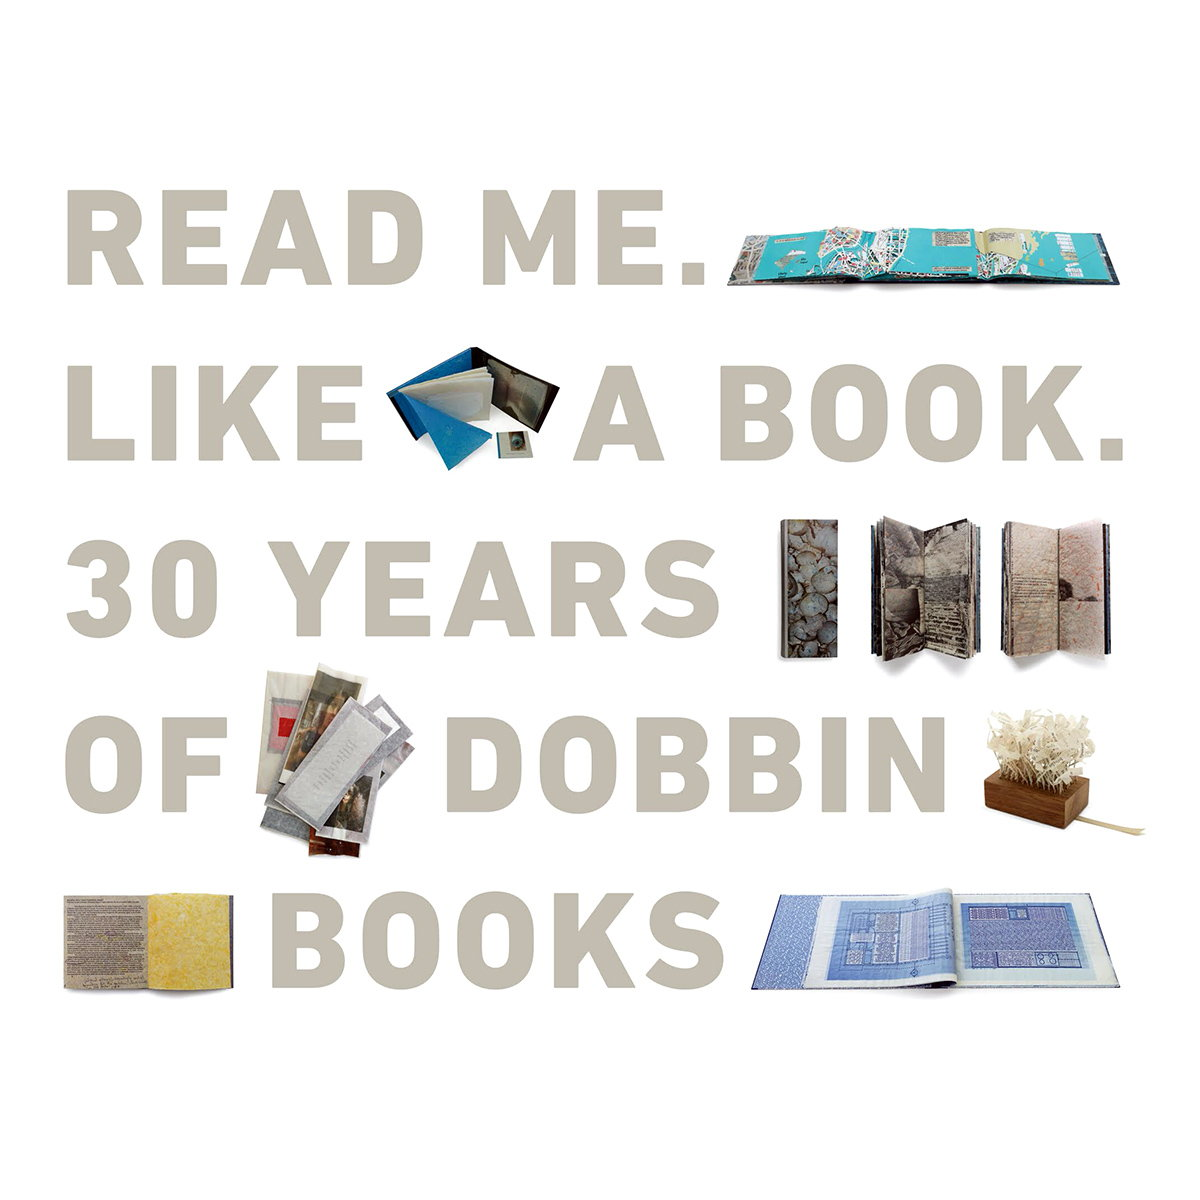 Read Me Like a Book - 30 Years of Dobbin Books